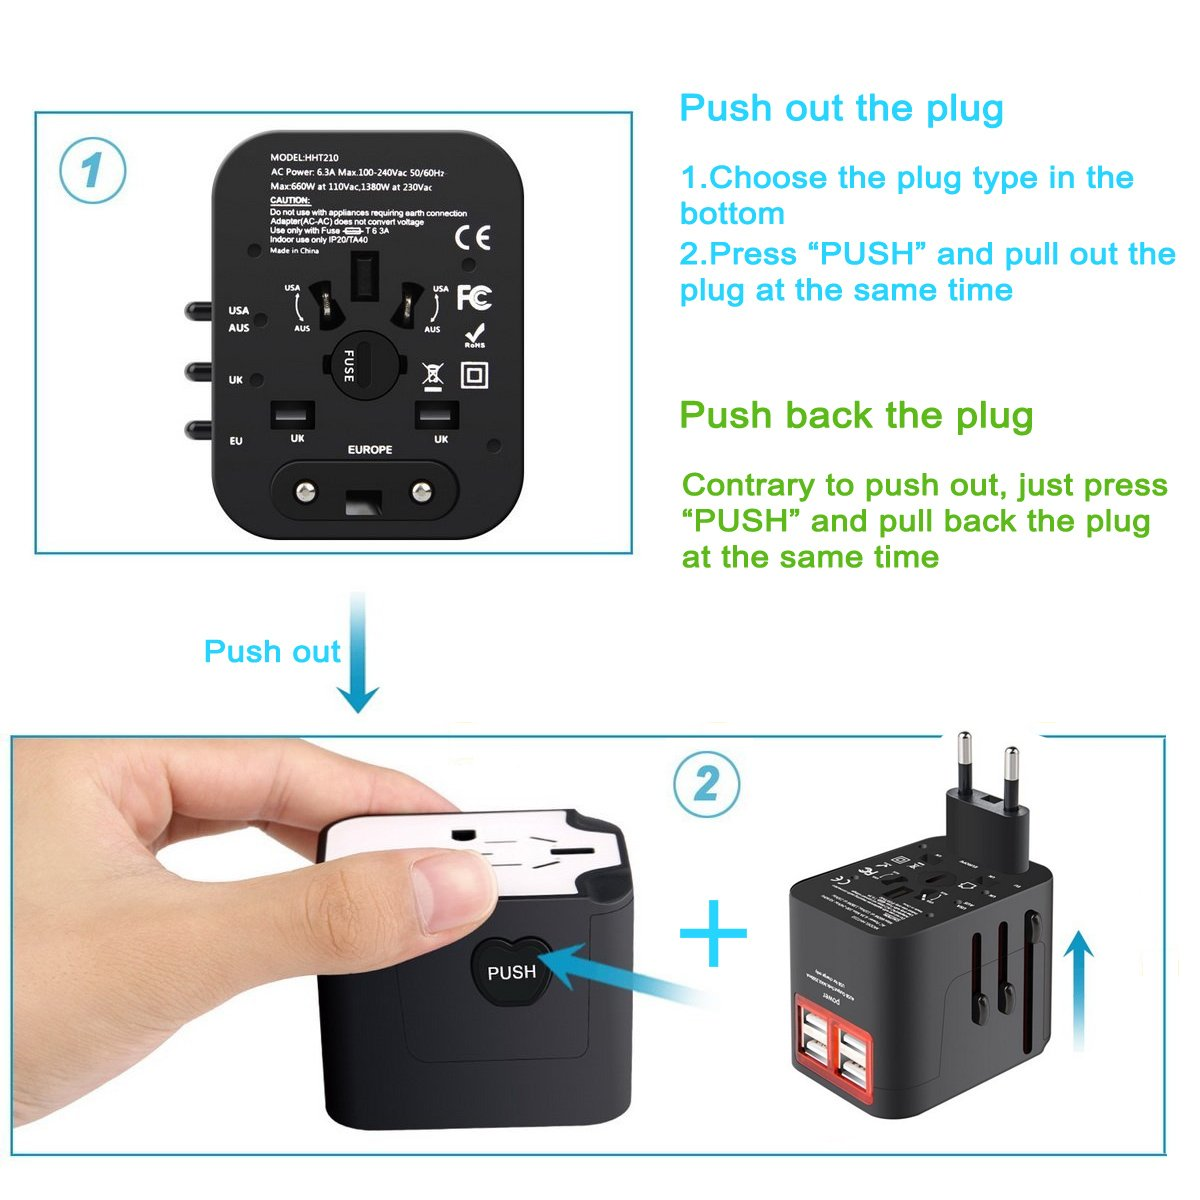 International Travel Adapter, Worldwide Travel Charger with 4 USB Ports Power Converters for EU, UK, US, USA, AU, Europe & Asia, All-in-one Universal Wall Plug Multi-Outlets Electrical Adaptor - Black by YIVIEW (Image #3)